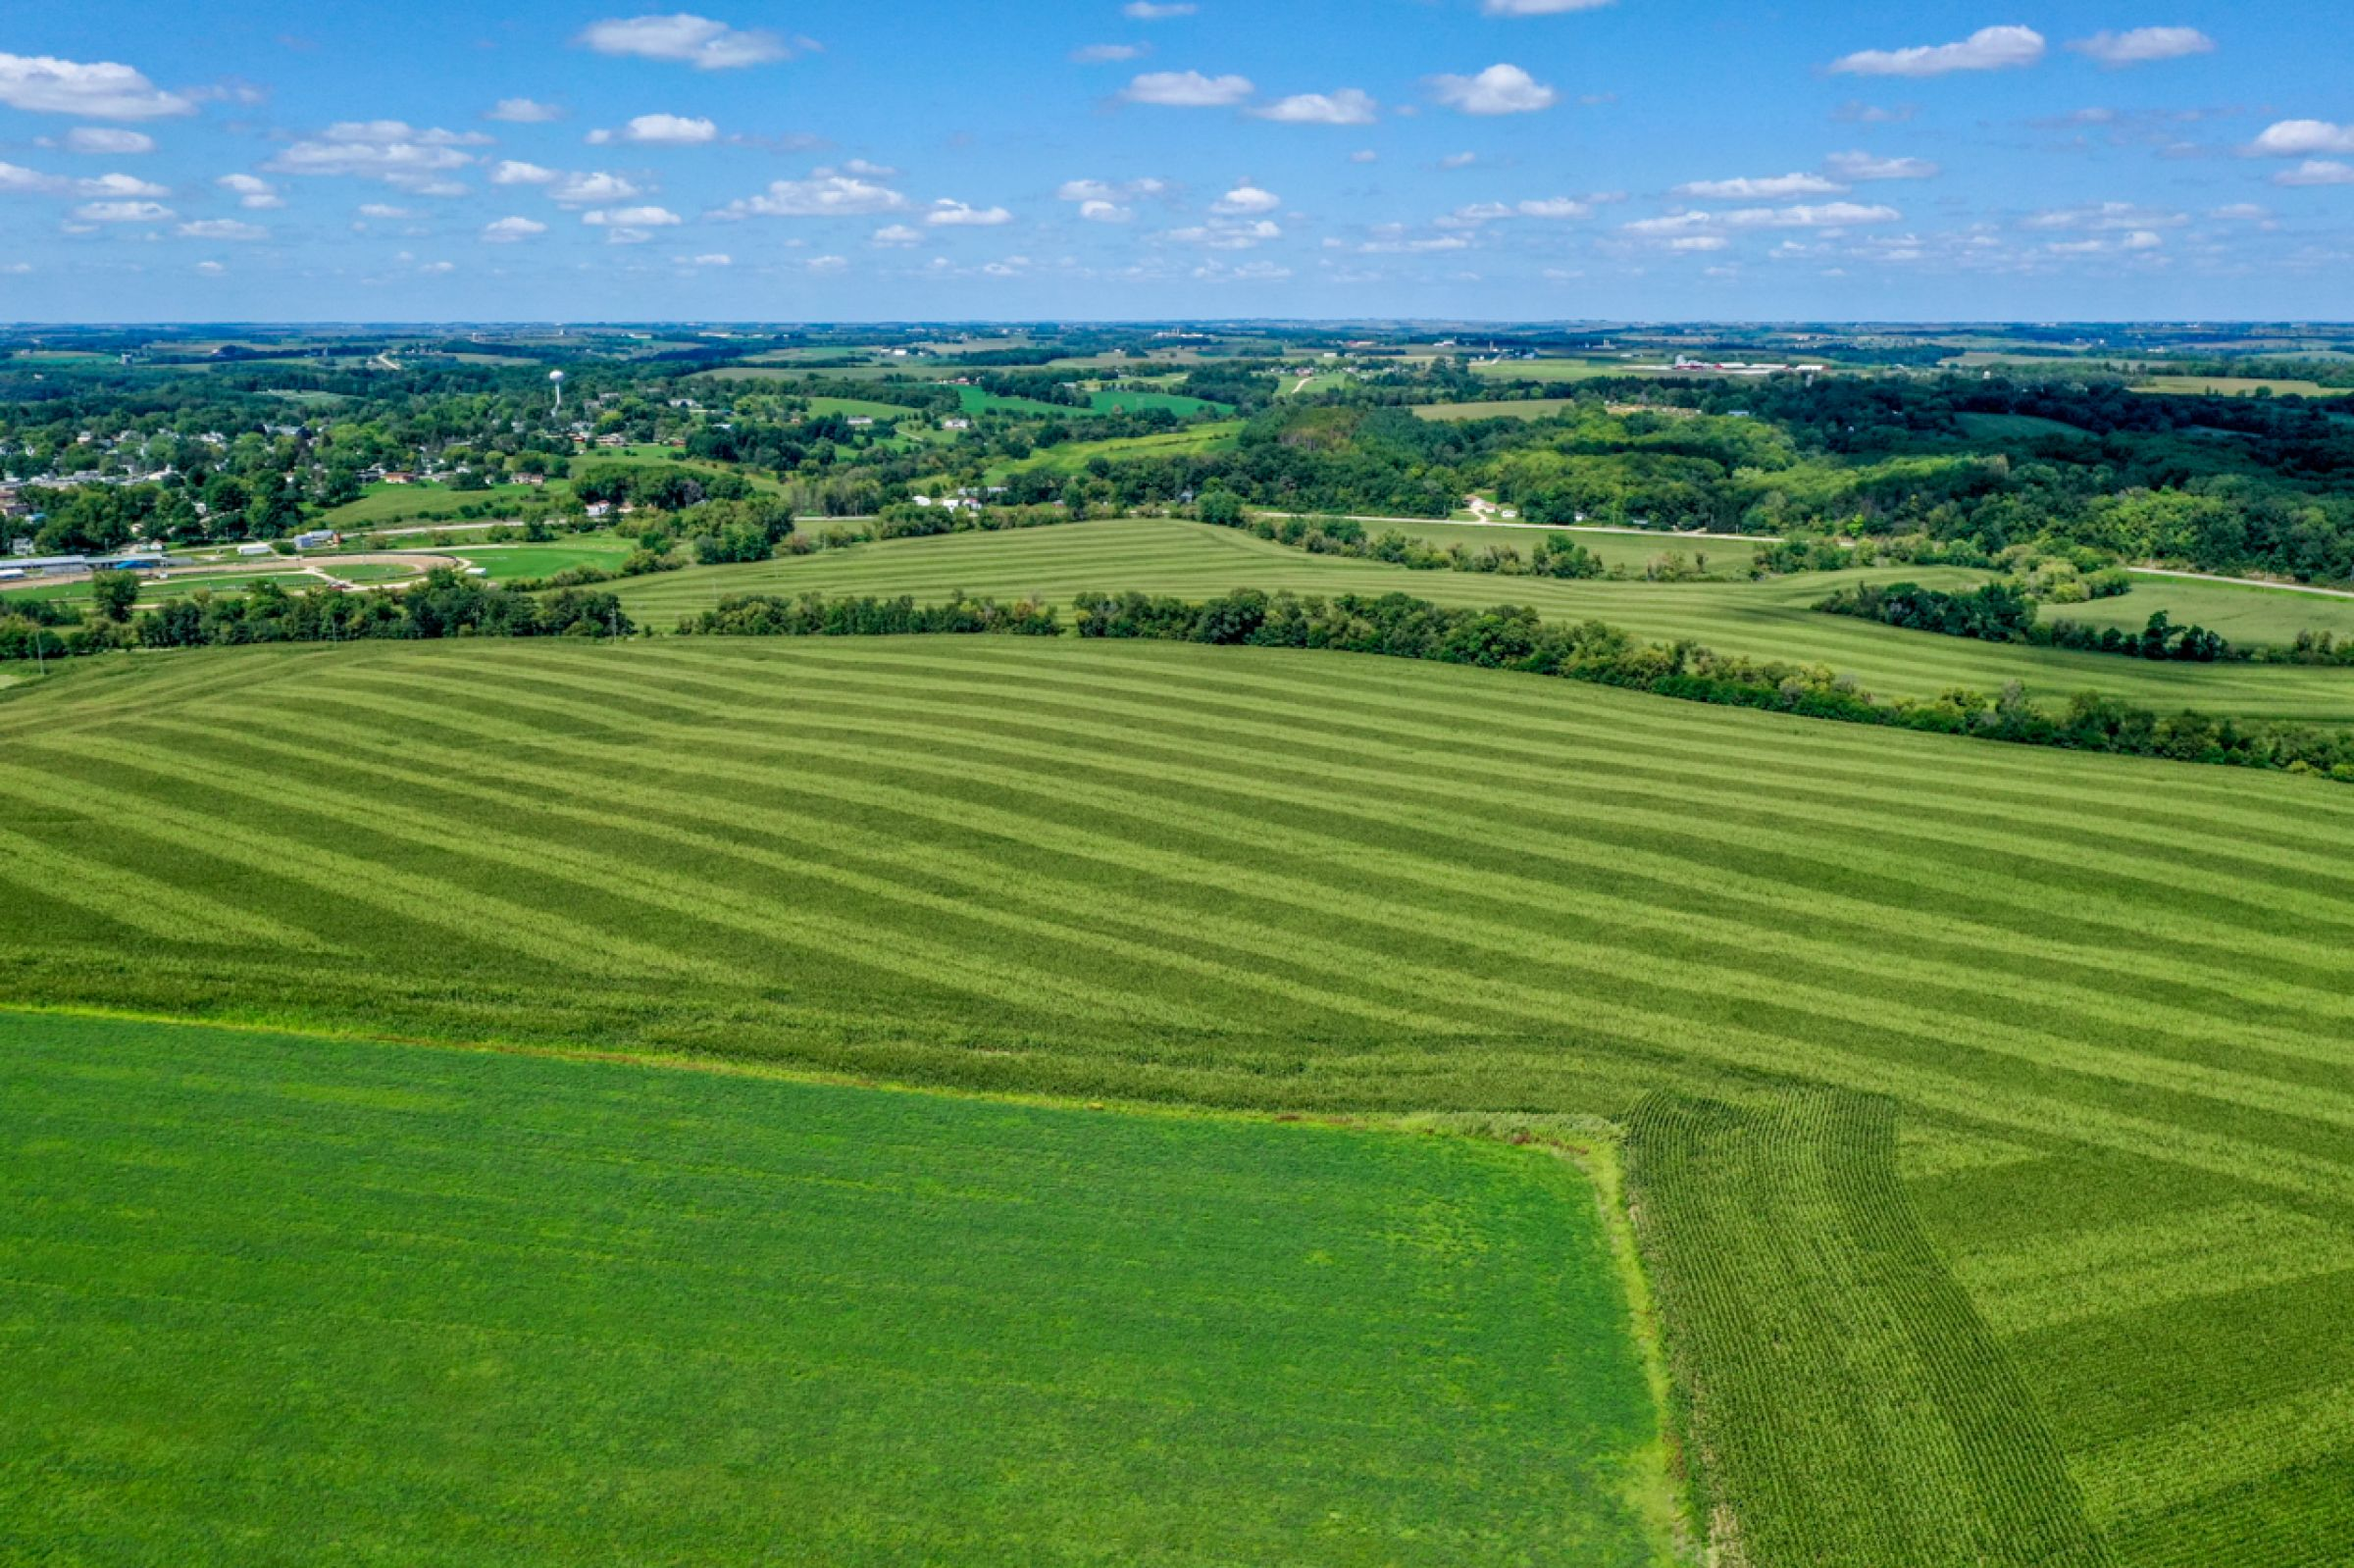 land-lafayette-county-wisconsin-120-acres-listing-number-15729-16-2021-09-03-204847.jpg